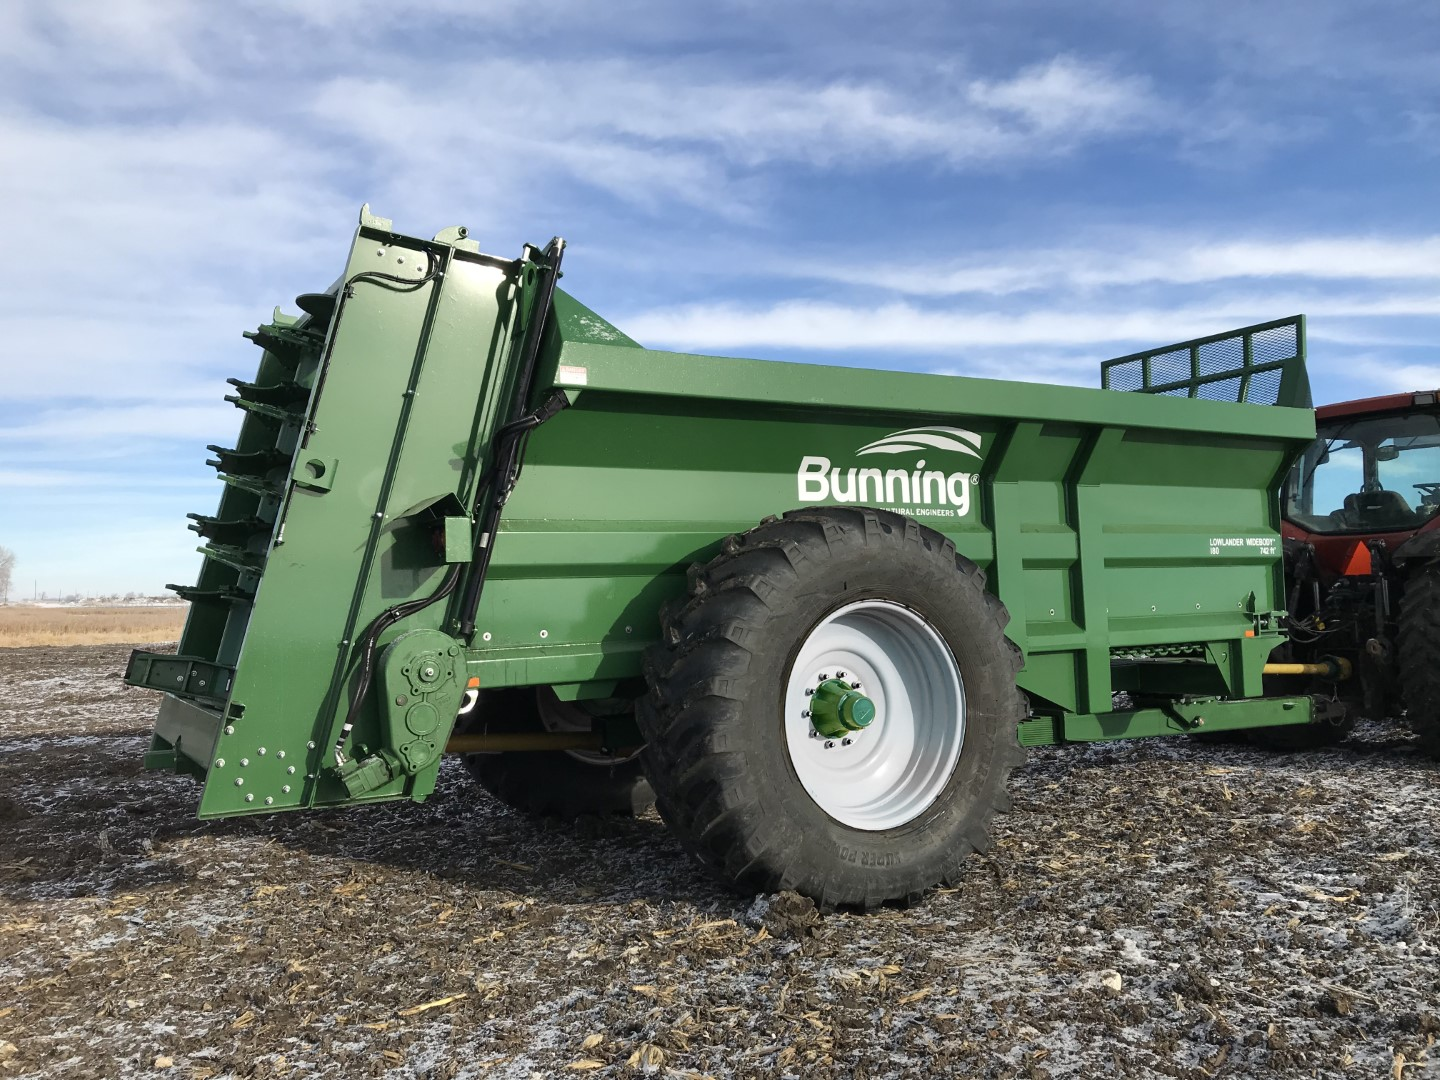 Lowlander 180 TVA Widebody with slurry door, built in extenions, sprung drawbar, lift off augers, dual floor drive, stone guard extension and 710/70 R38 wheels